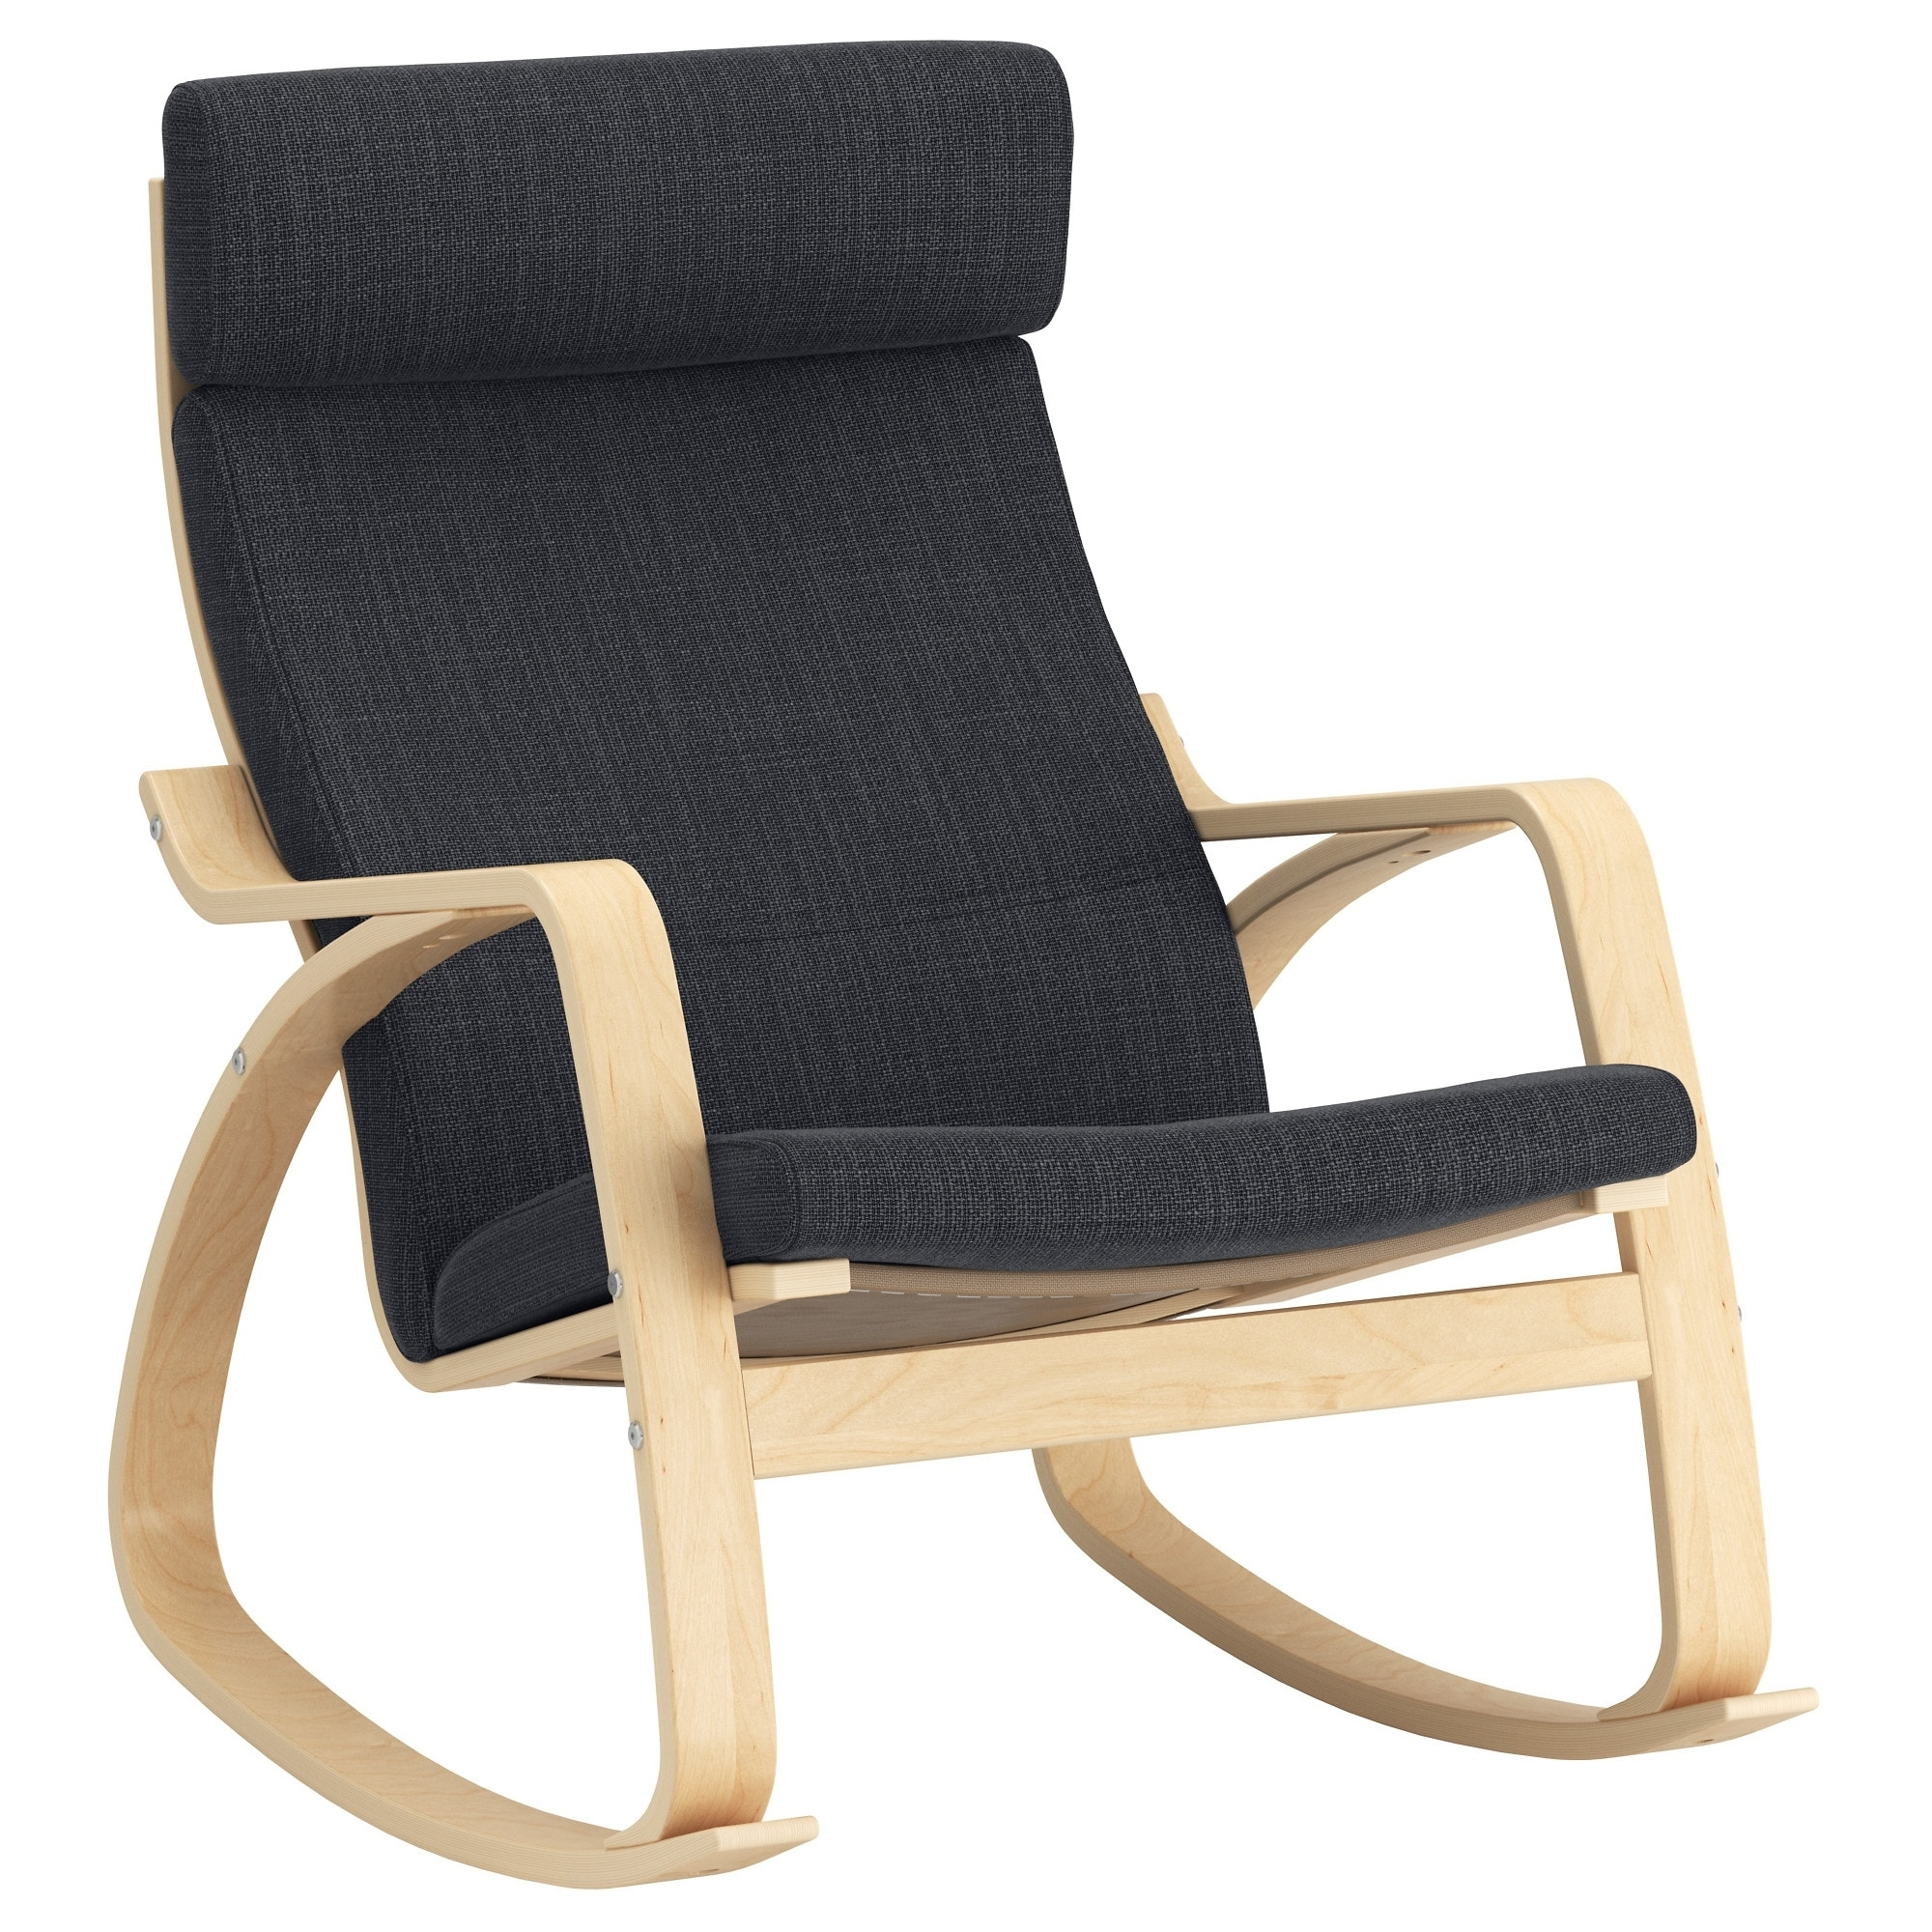 2018 Poäng Rocking Chair Birch Veneer/hillared Anthracite – Ikea Regarding High Back Rocking Chairs (View 2 of 15)